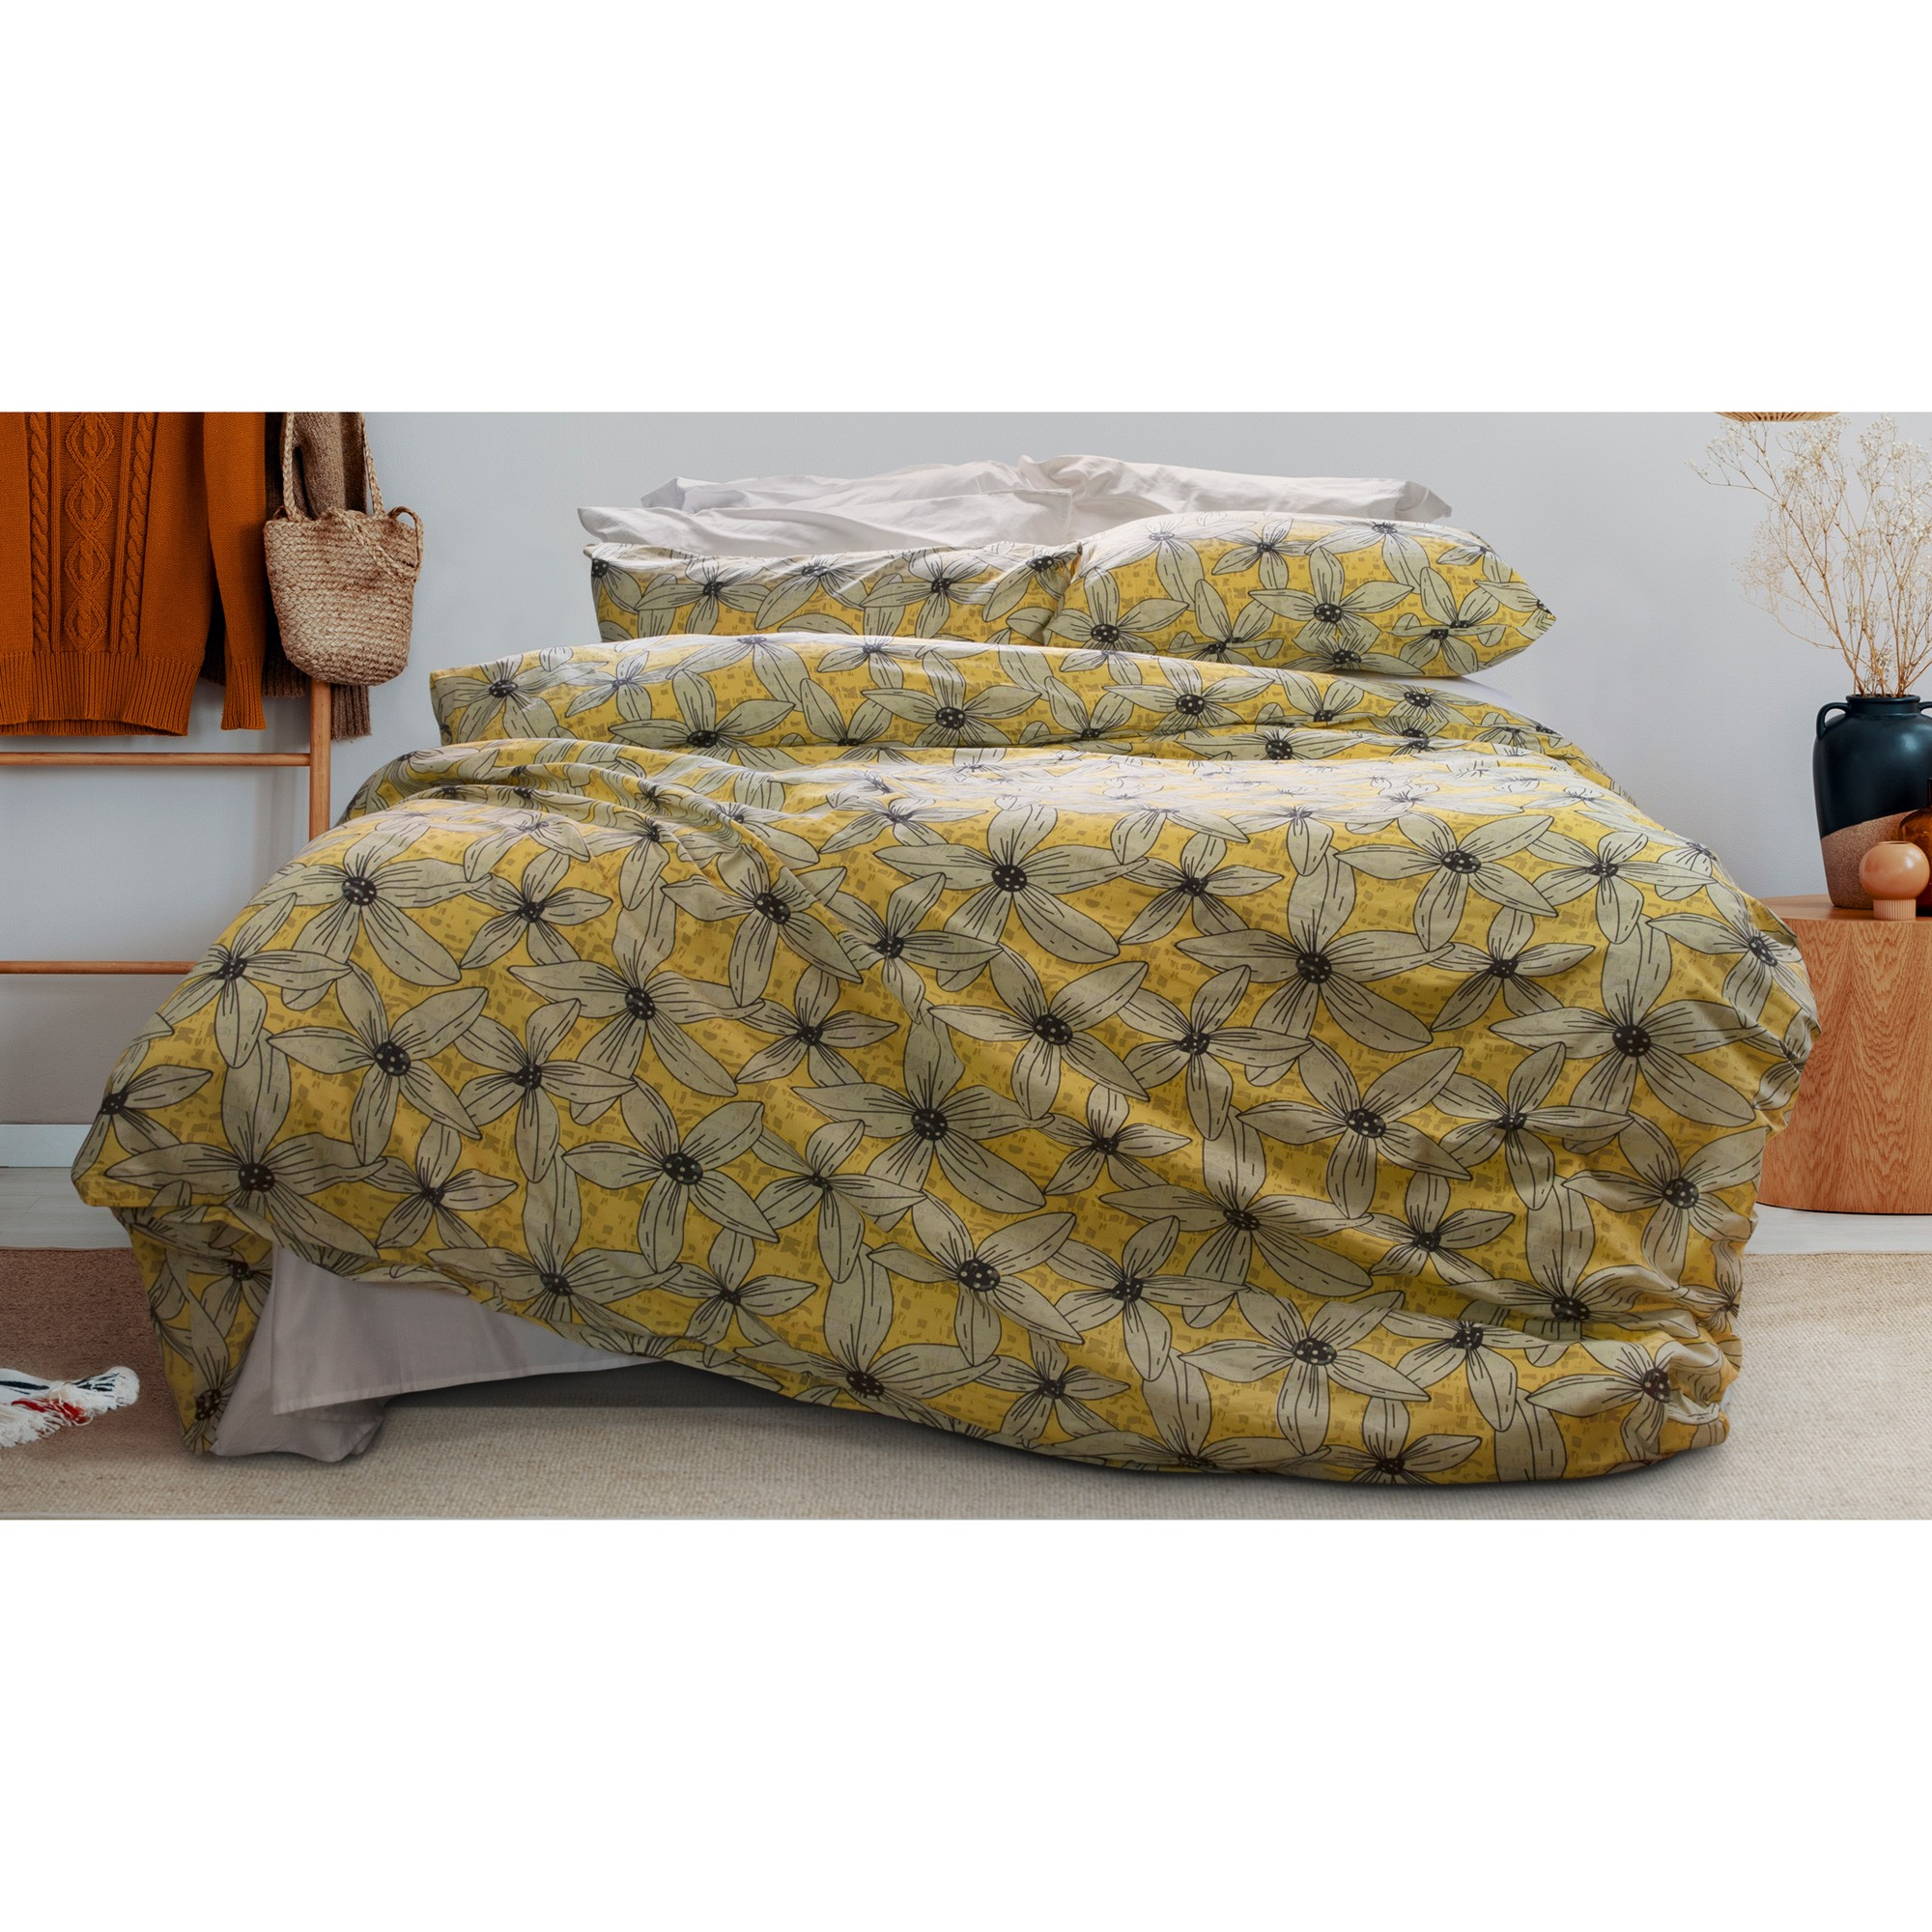 Lumiosa 2 Piece Cotton Quilt Cover Set, Single